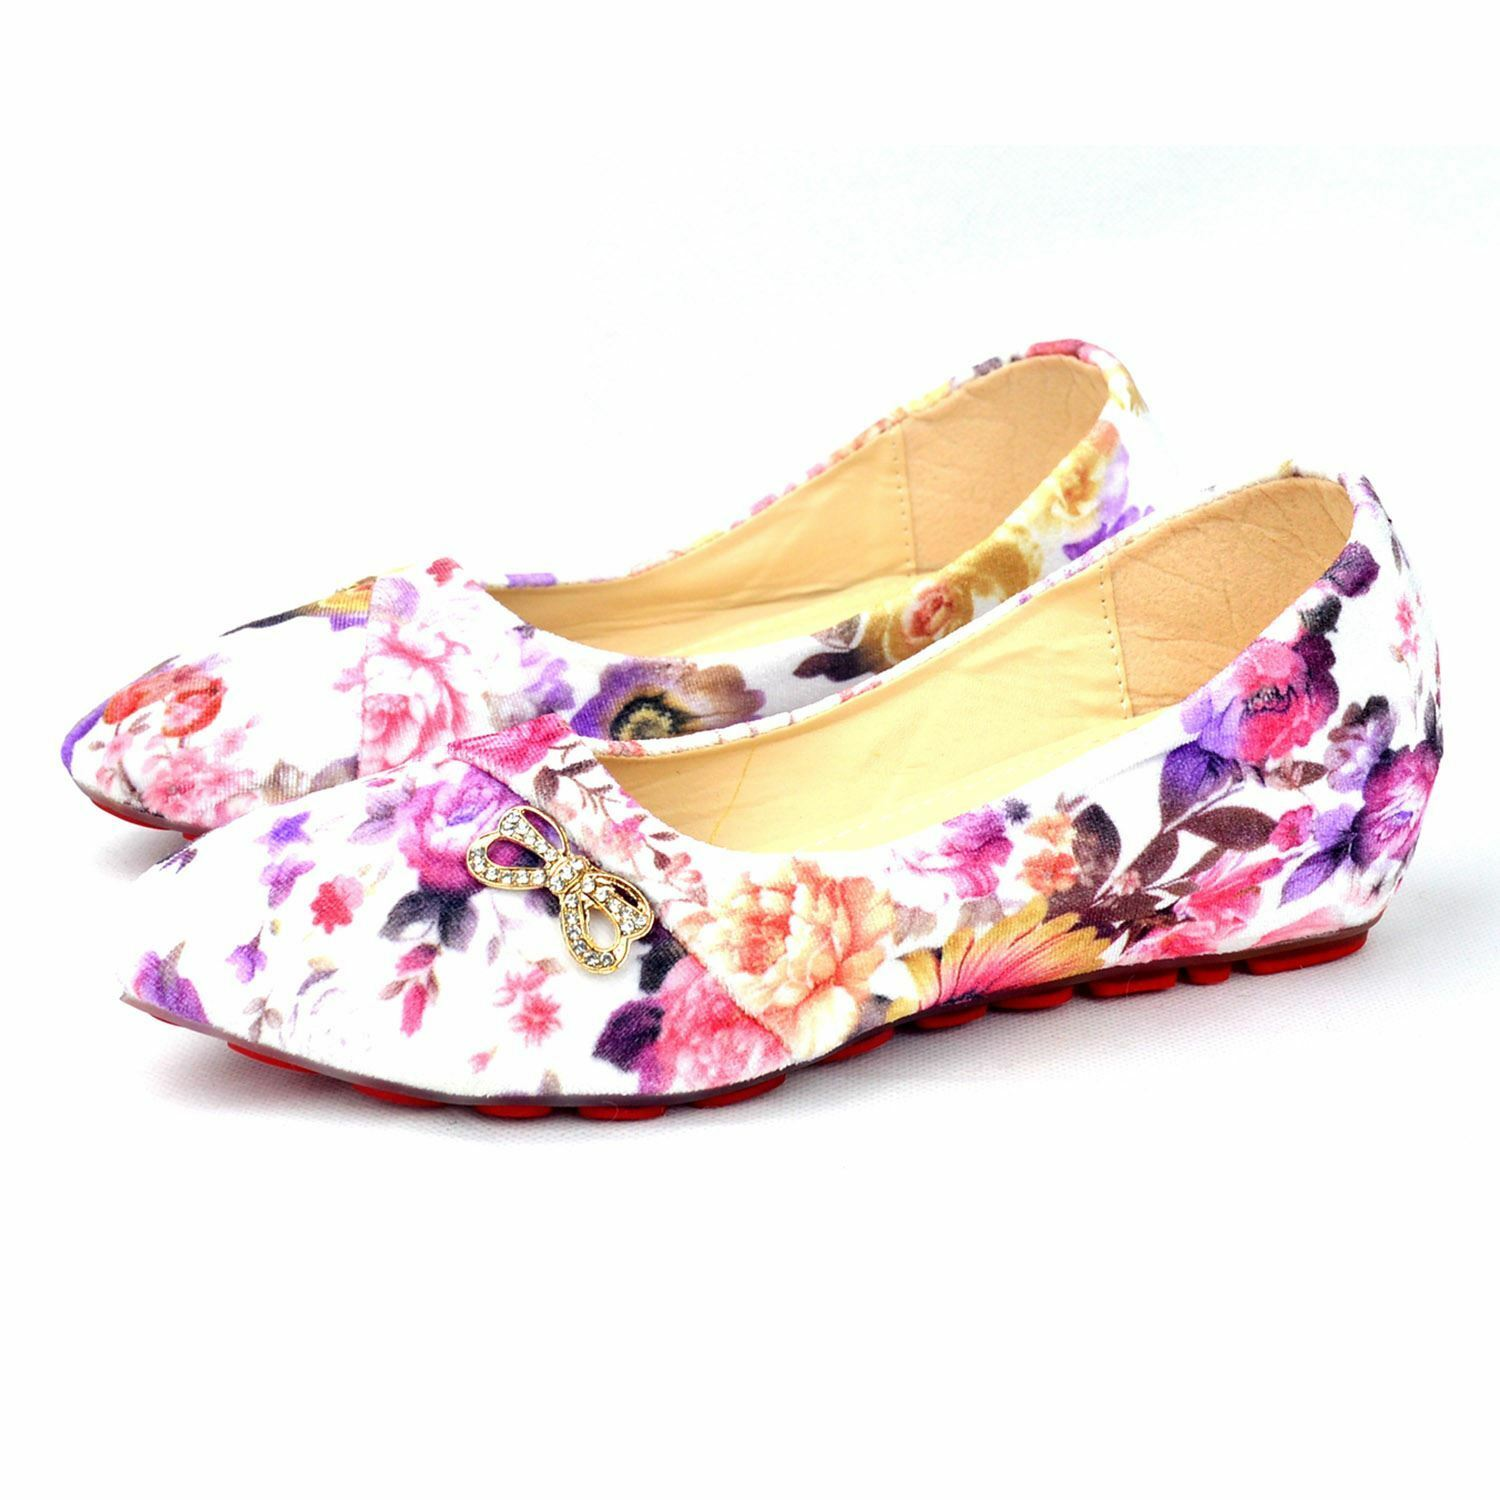 Tattopani Girl's Colorful Slip-On Ballerina Comfort flat Shoes with Flower Print